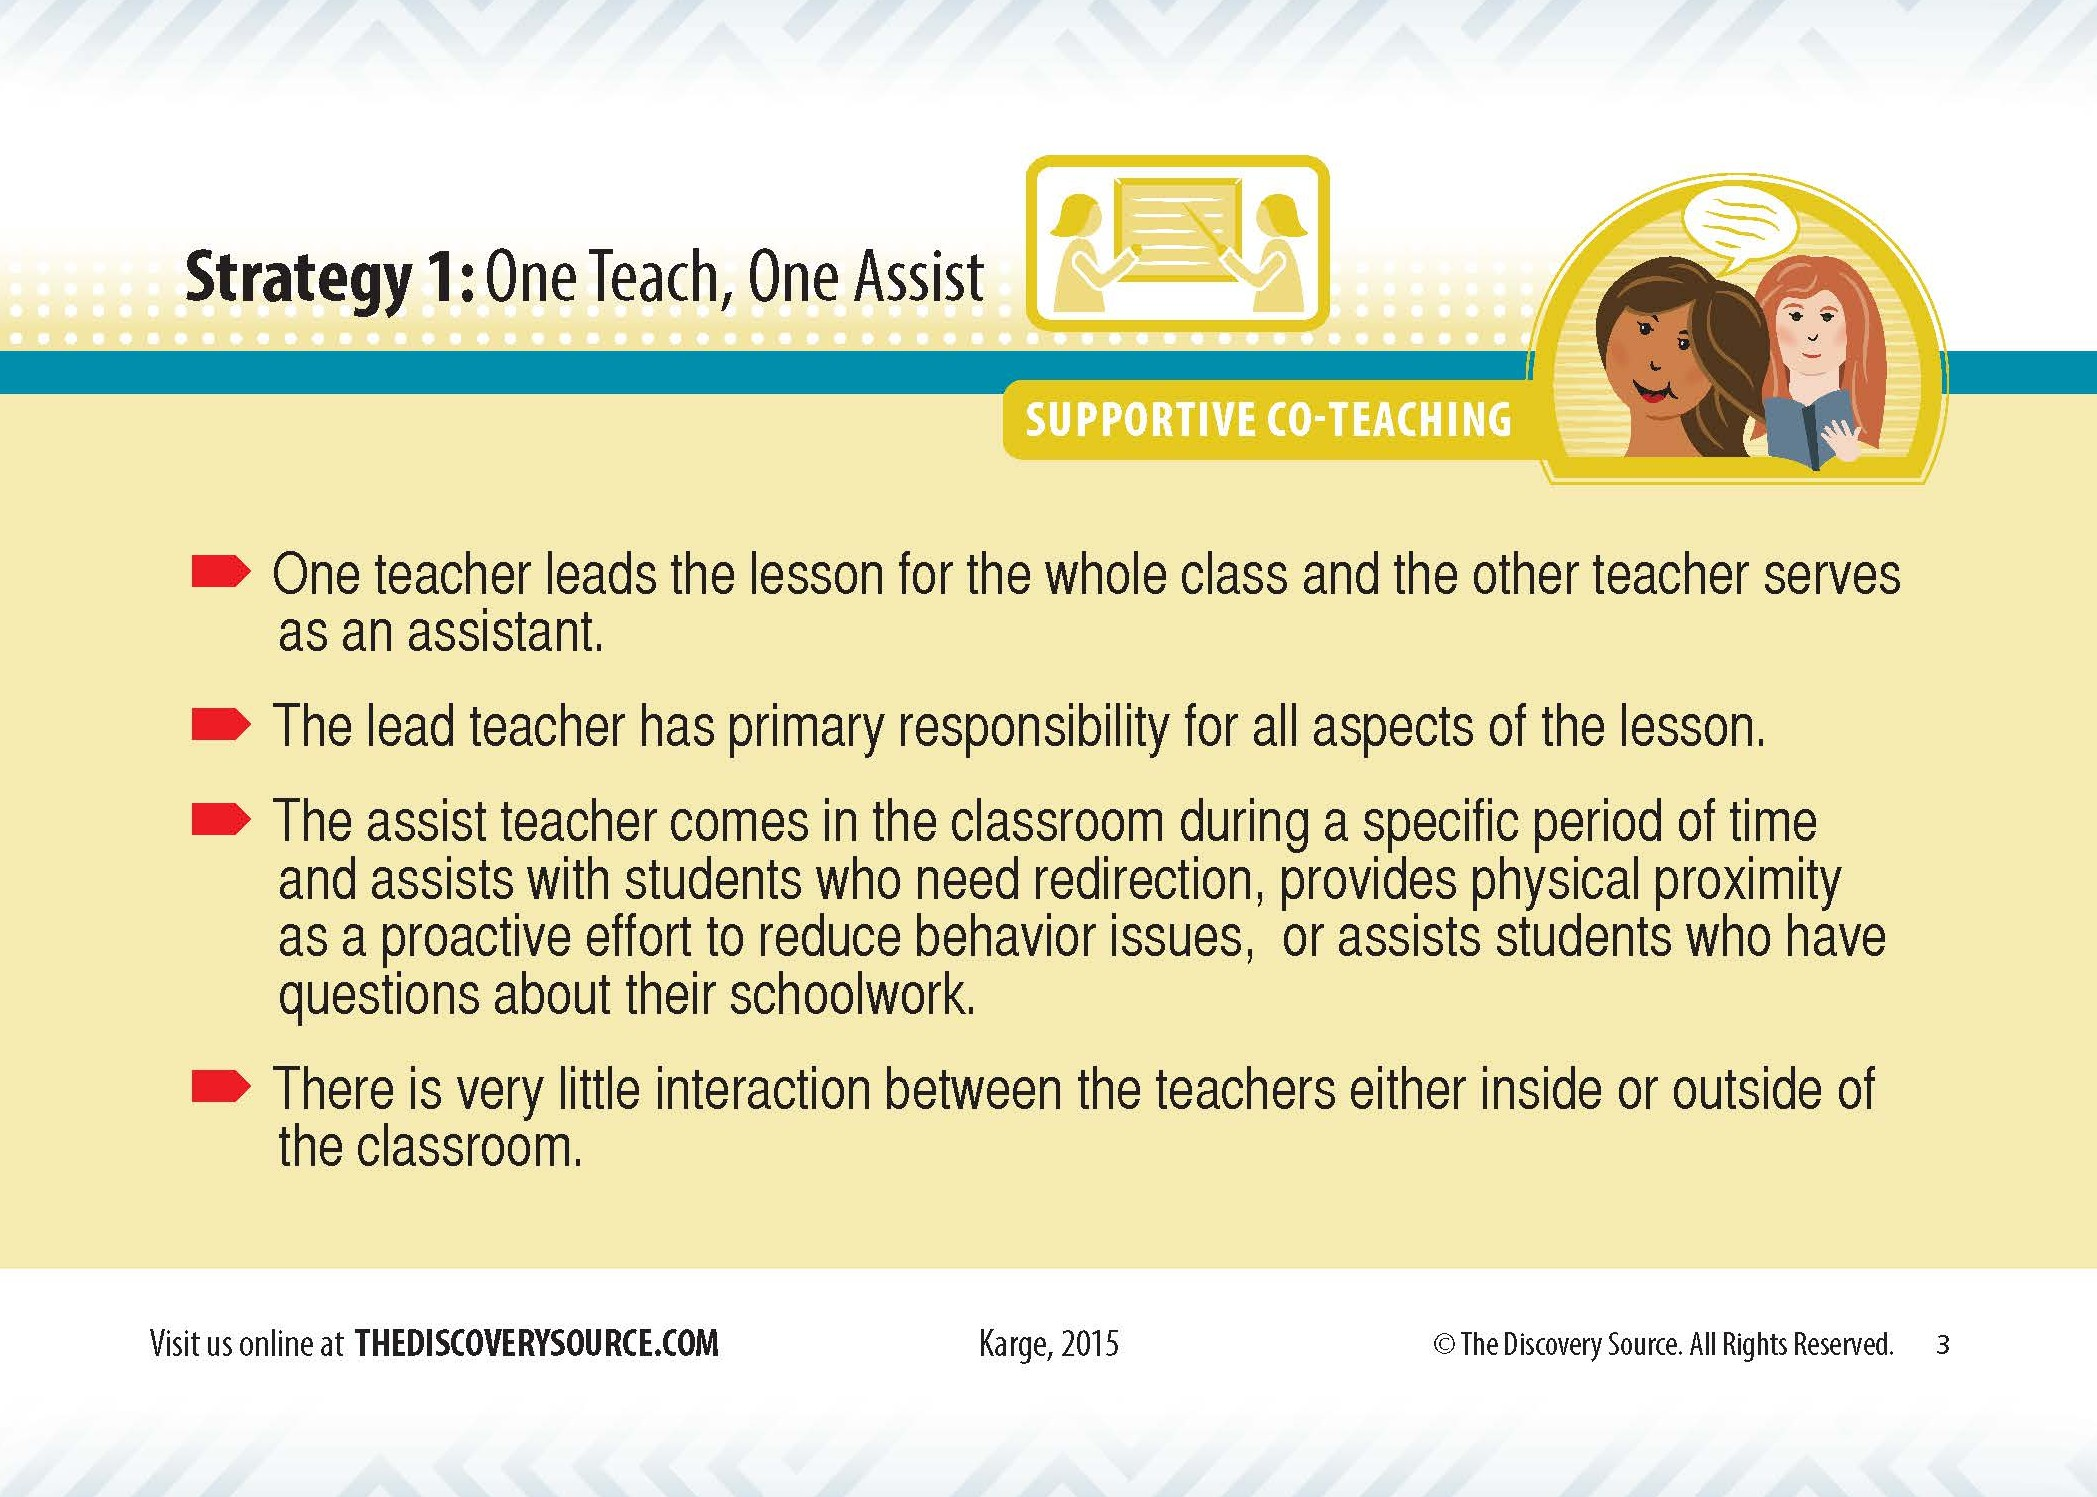 Engage Co-Teach | The Discovery Source